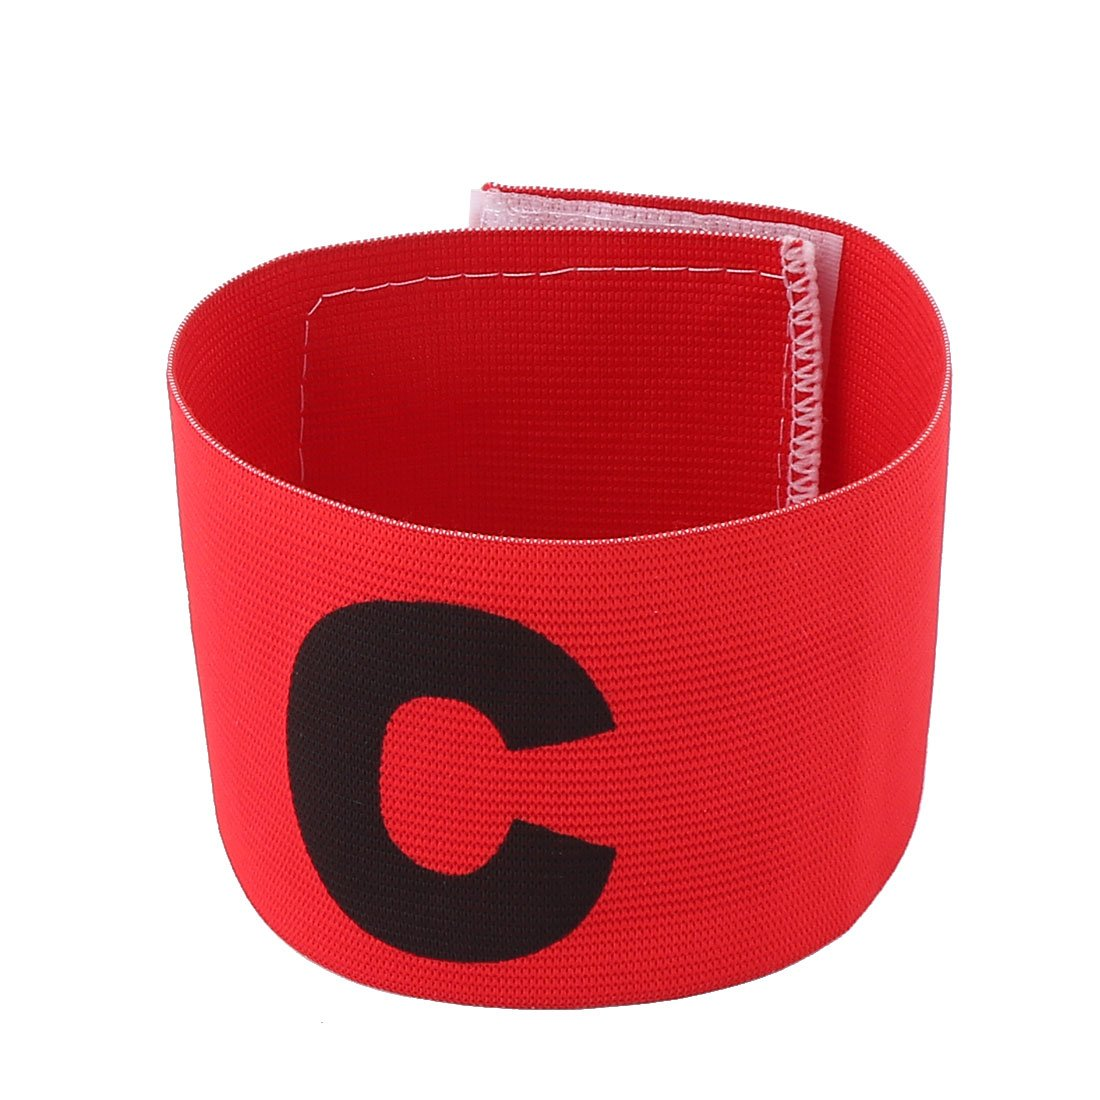 Obvious Symbol Nylon Captain Armband Red for Fooball Soccer Game a13052200ux0973